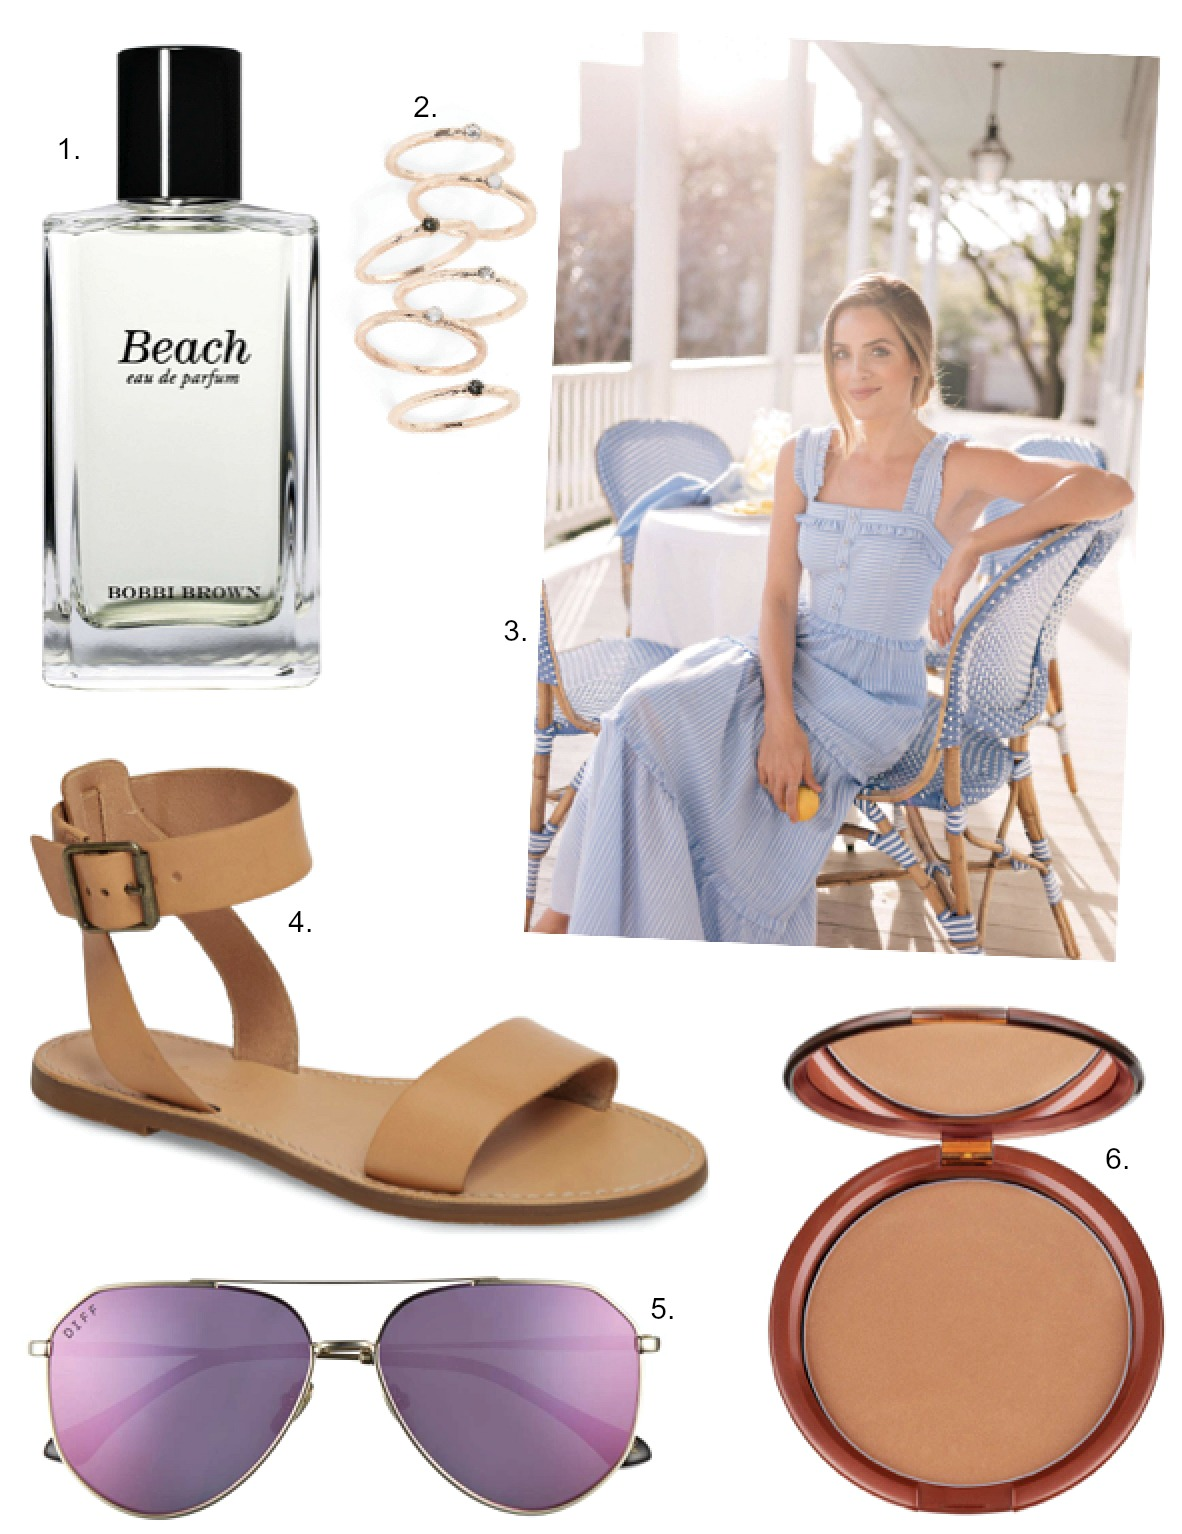 best spring fashion and beauty bobbi brown beach perfume review gal meets glam maxi dress diff x jessie james decker sunglasses